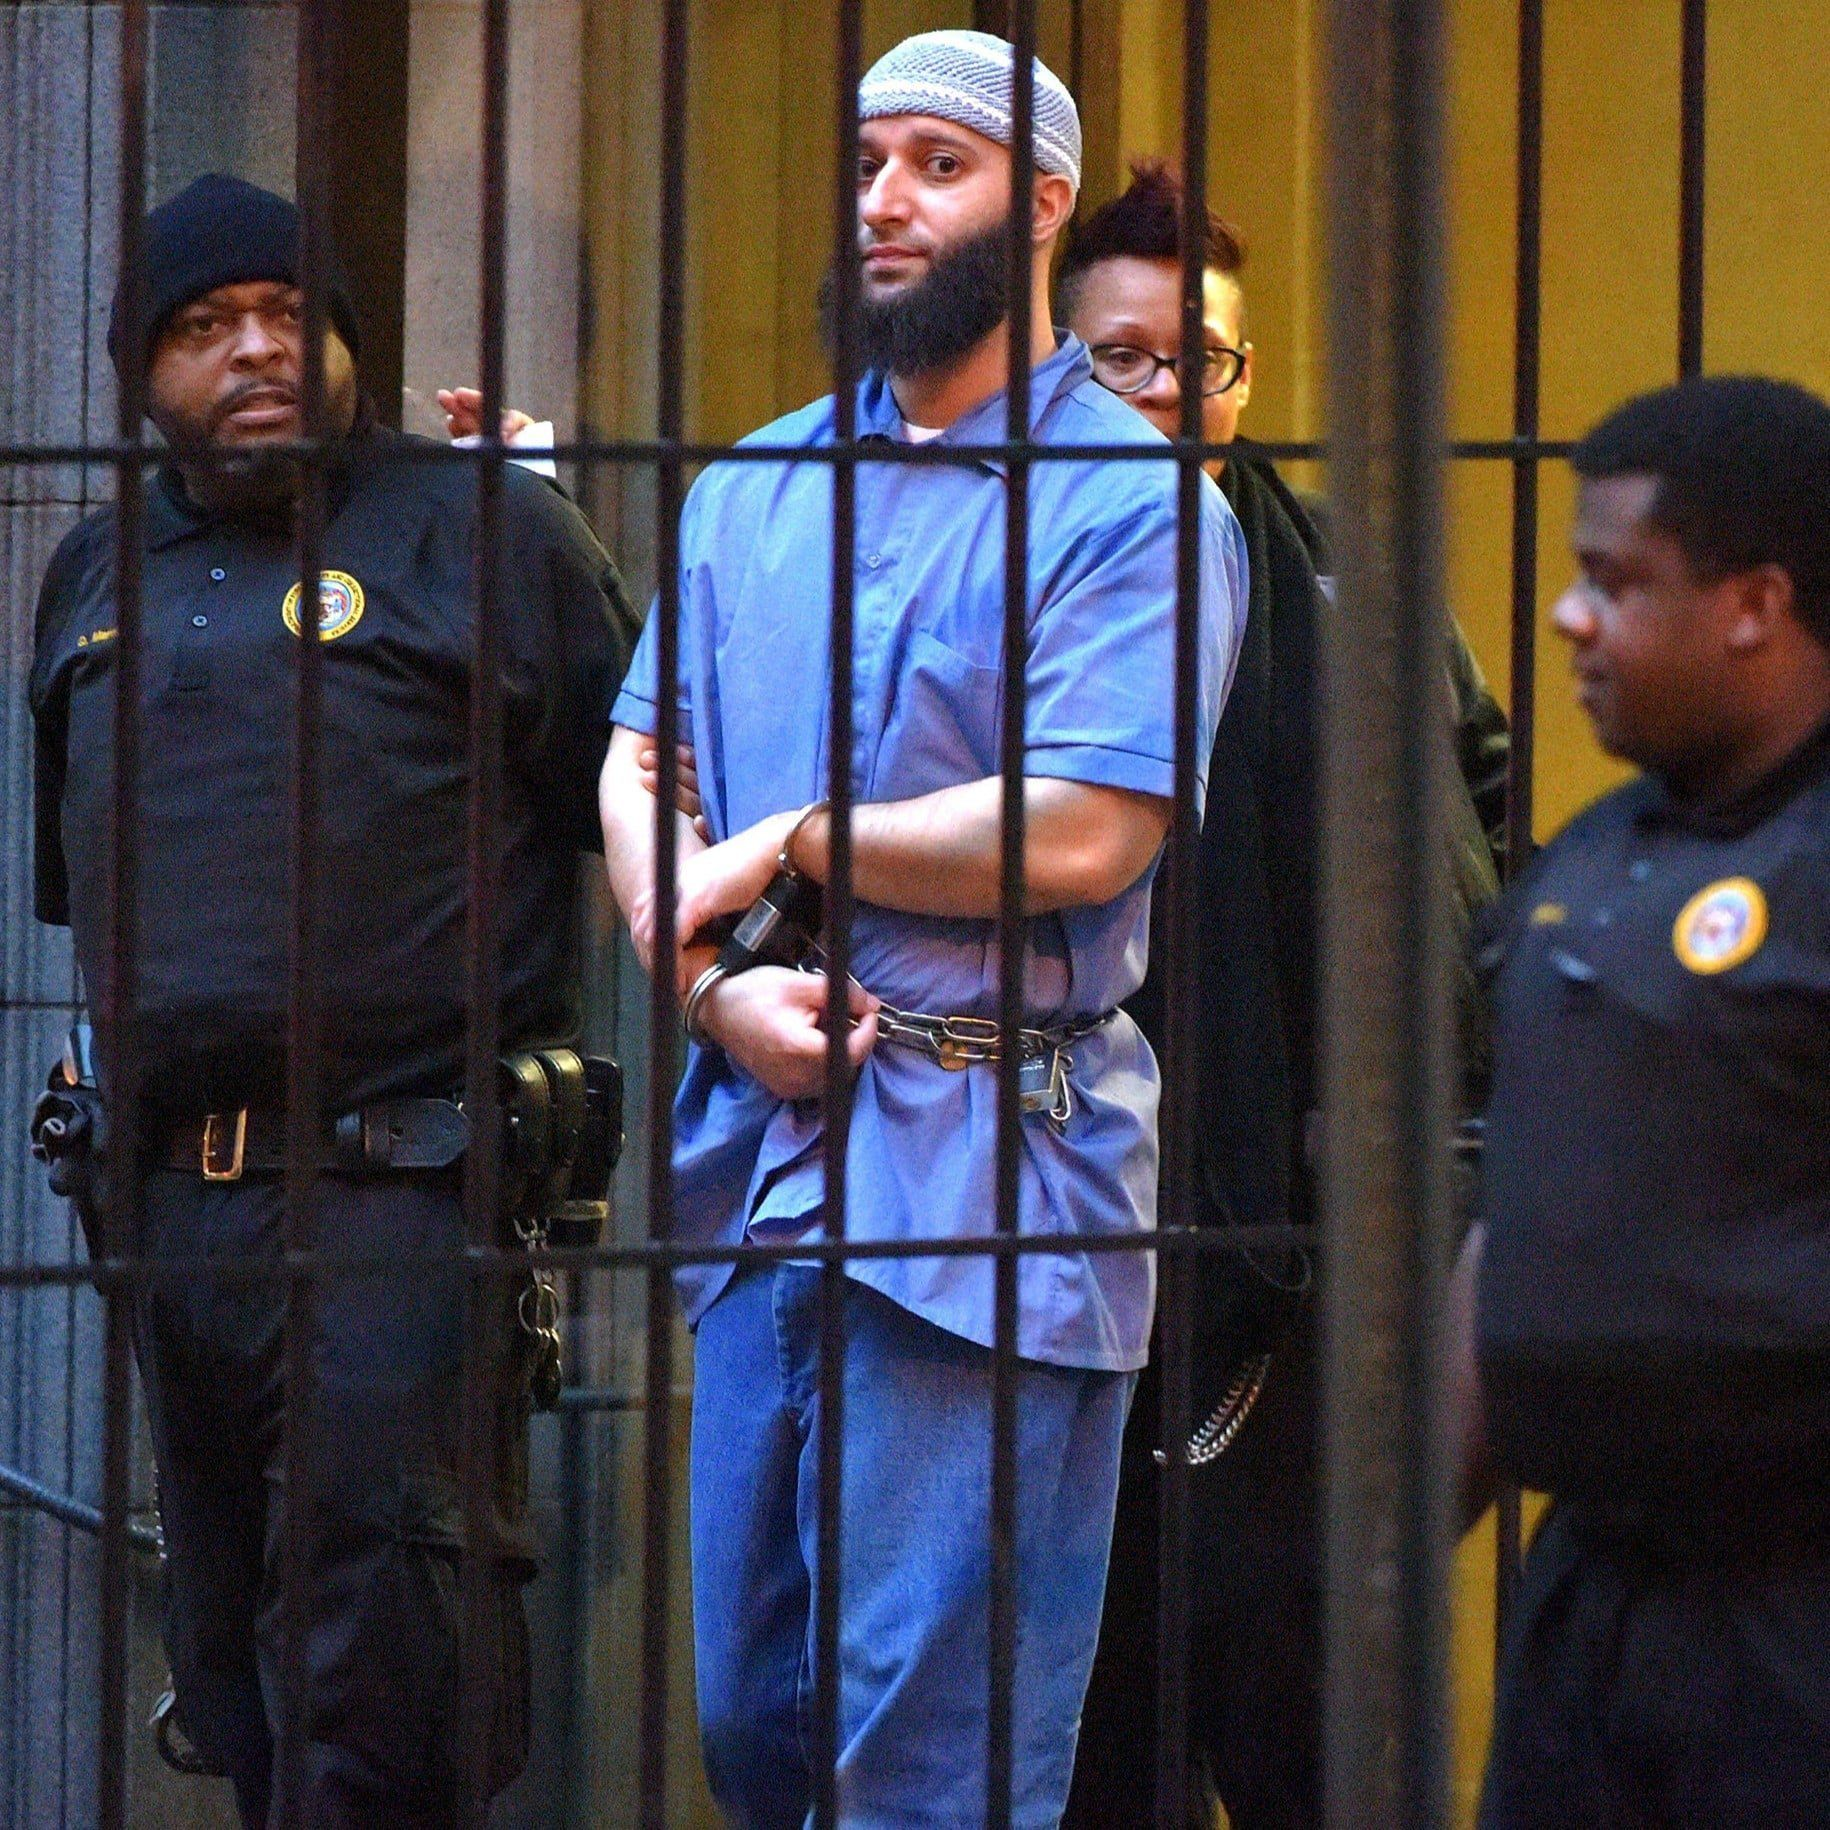 'Serial' subject Adnan Syed's conviction reinstated by Maryland court